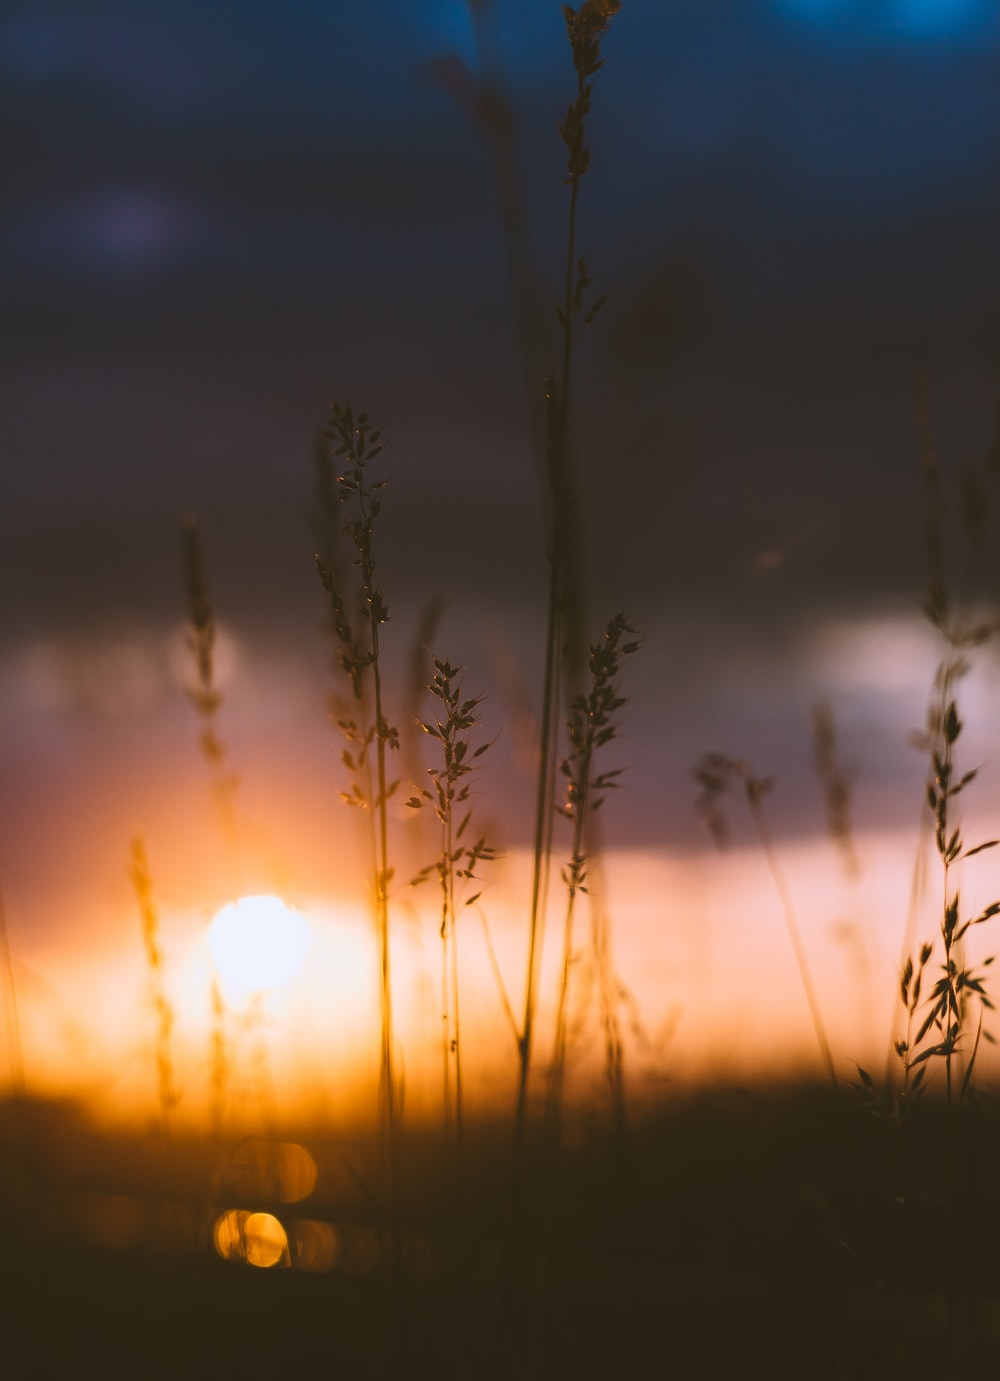 silhouette of grass under cloudy sky during orange sunset